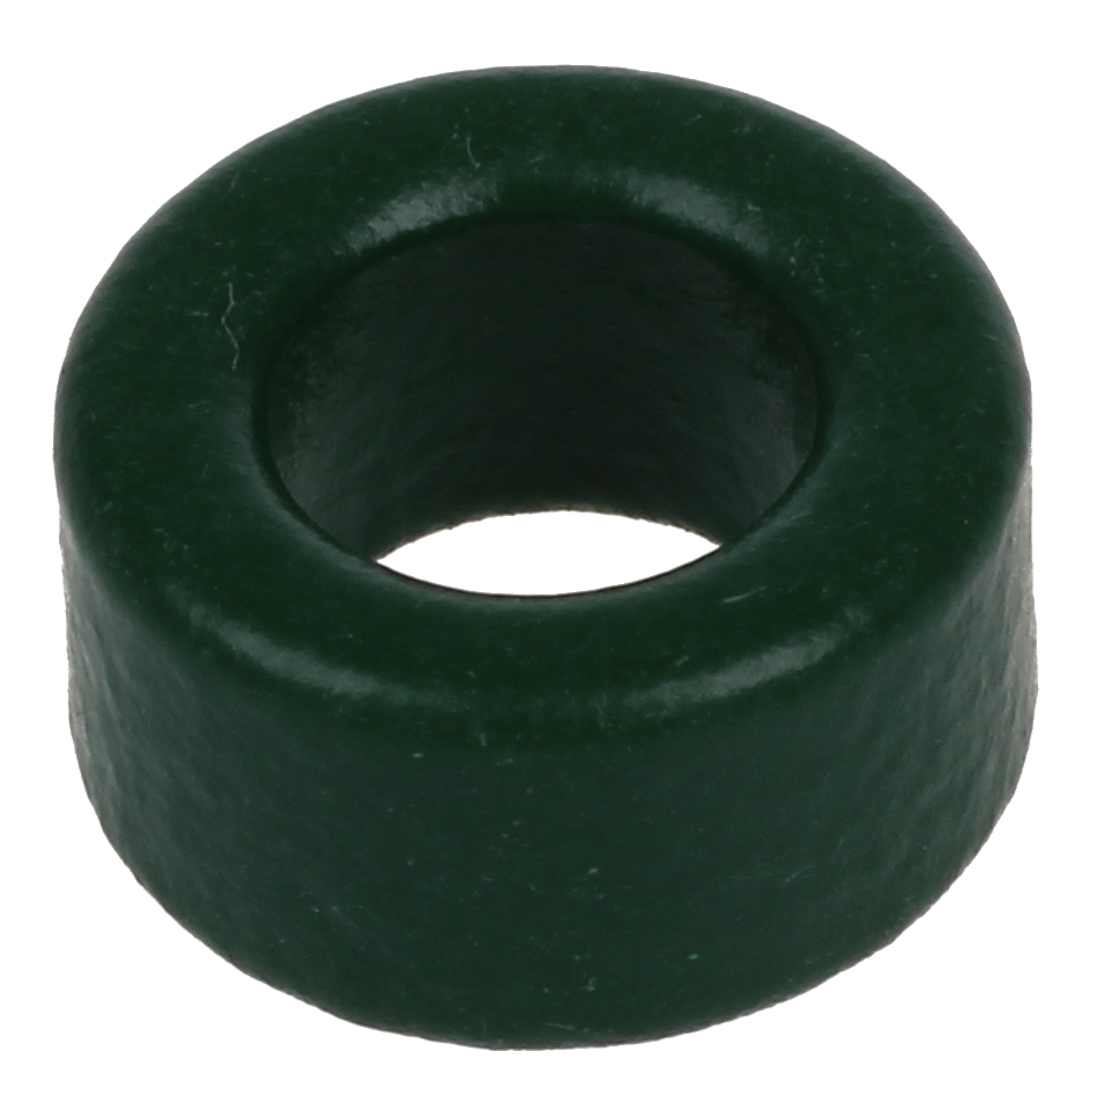 CSS  Inductor Coils Green Toroid Ferrite Cores 10mm x 6mm x 5mm inductor 10uh 4d28 package